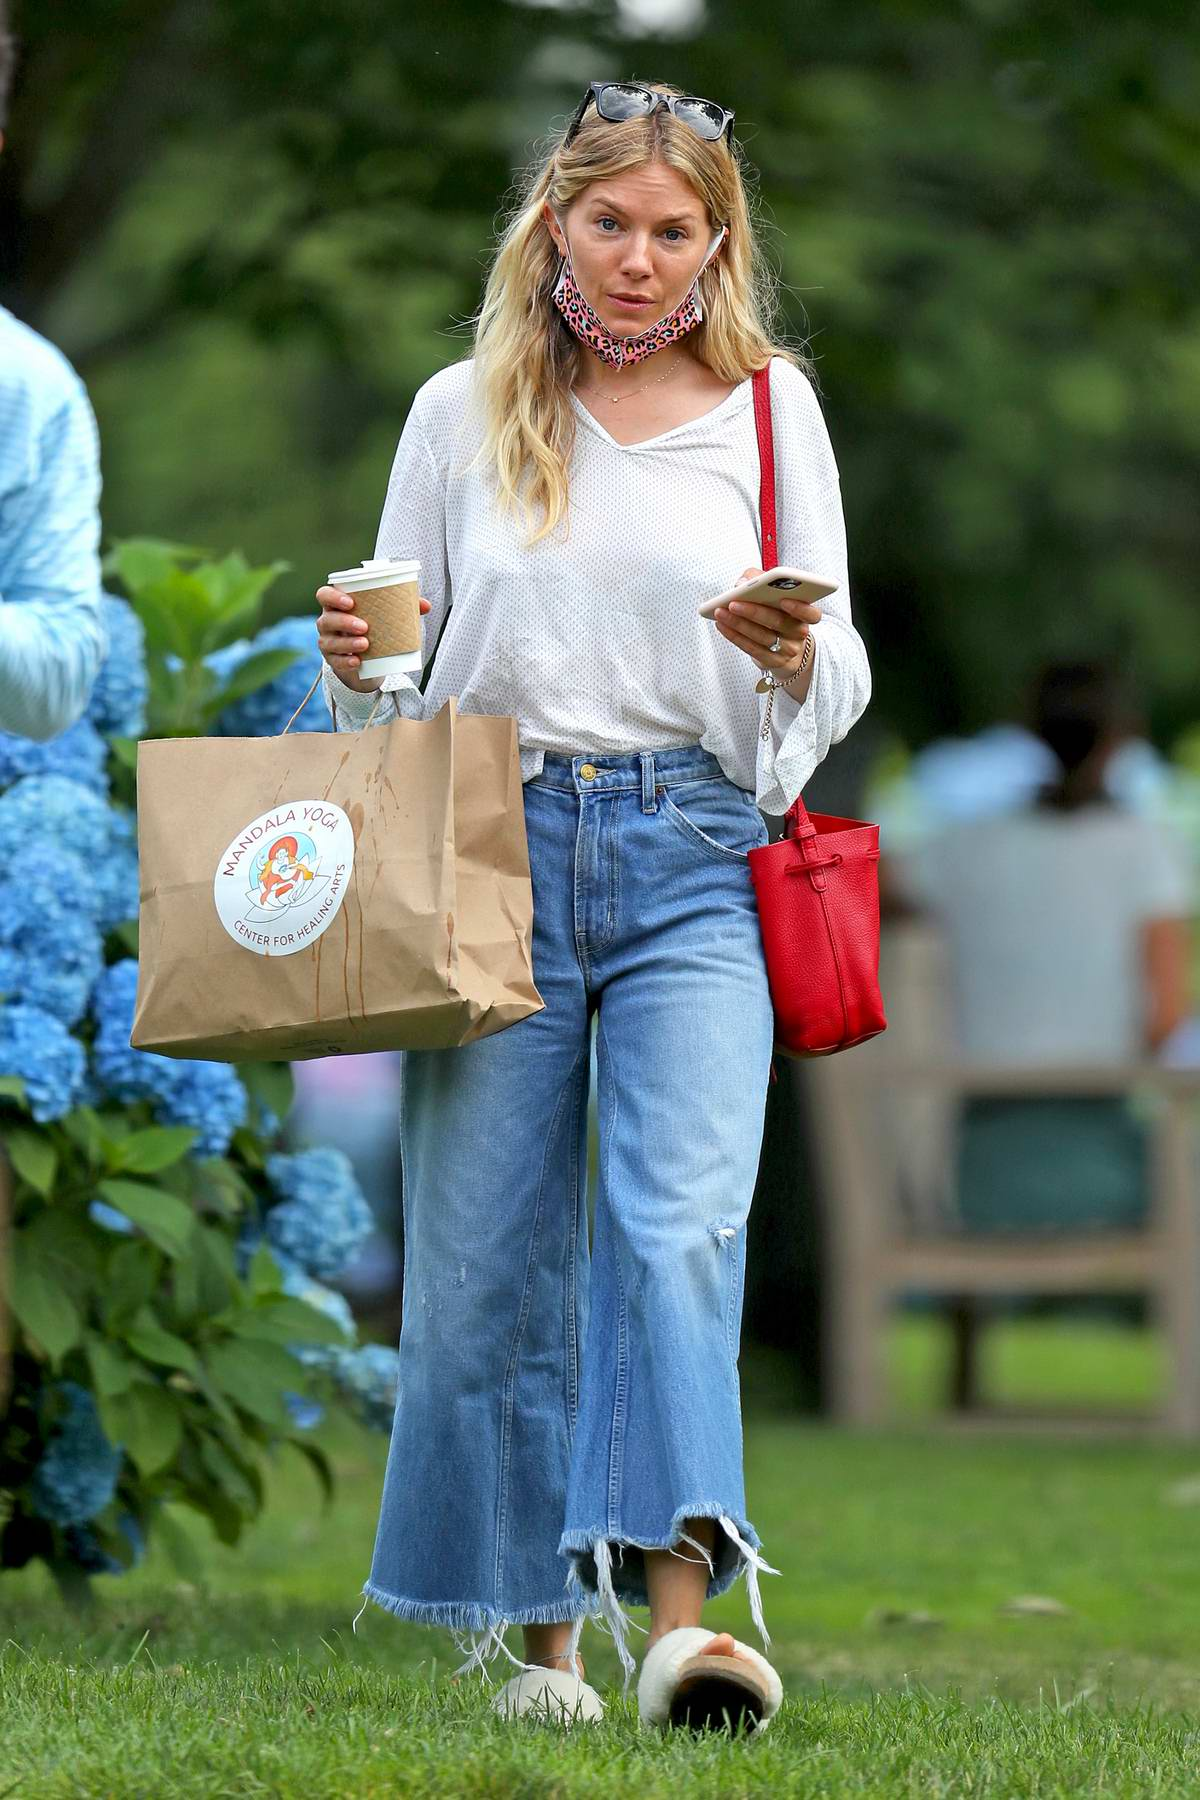 Sienna Miller wears a white top and flared jeans as she steps out for a coffee in The Hamptons, New York